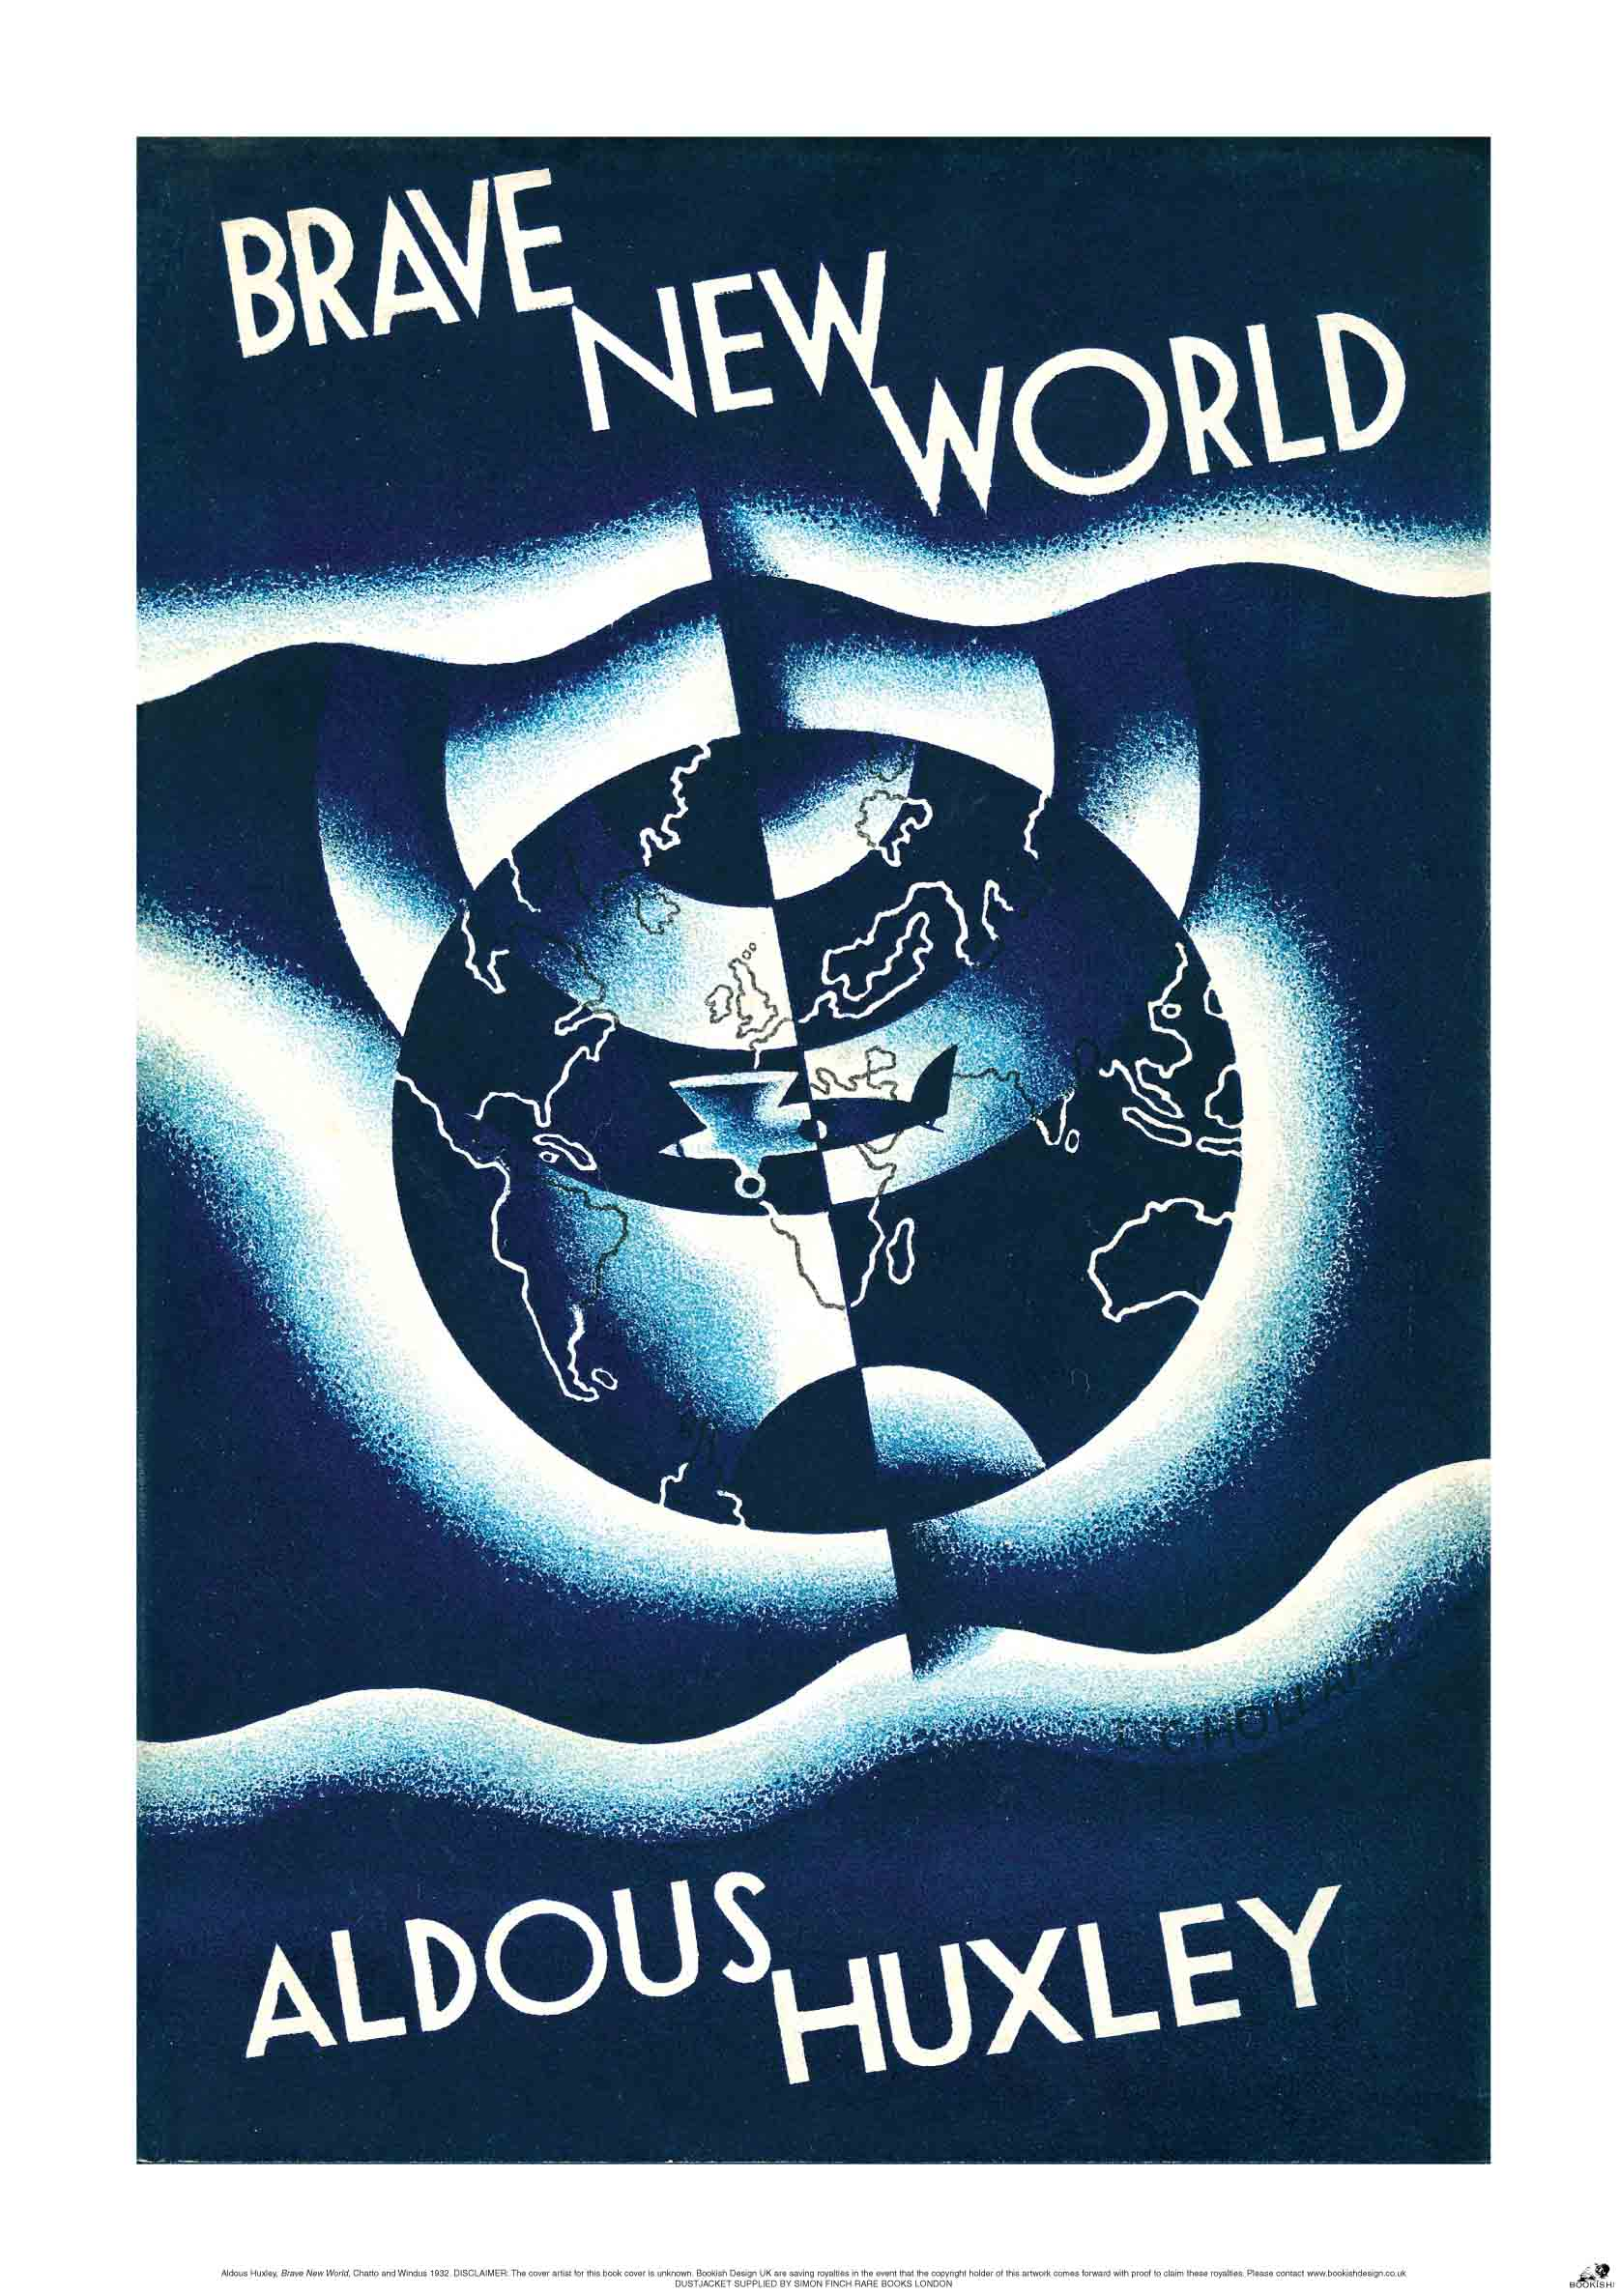 an overview of the three novels brave new world animal farm and 1984